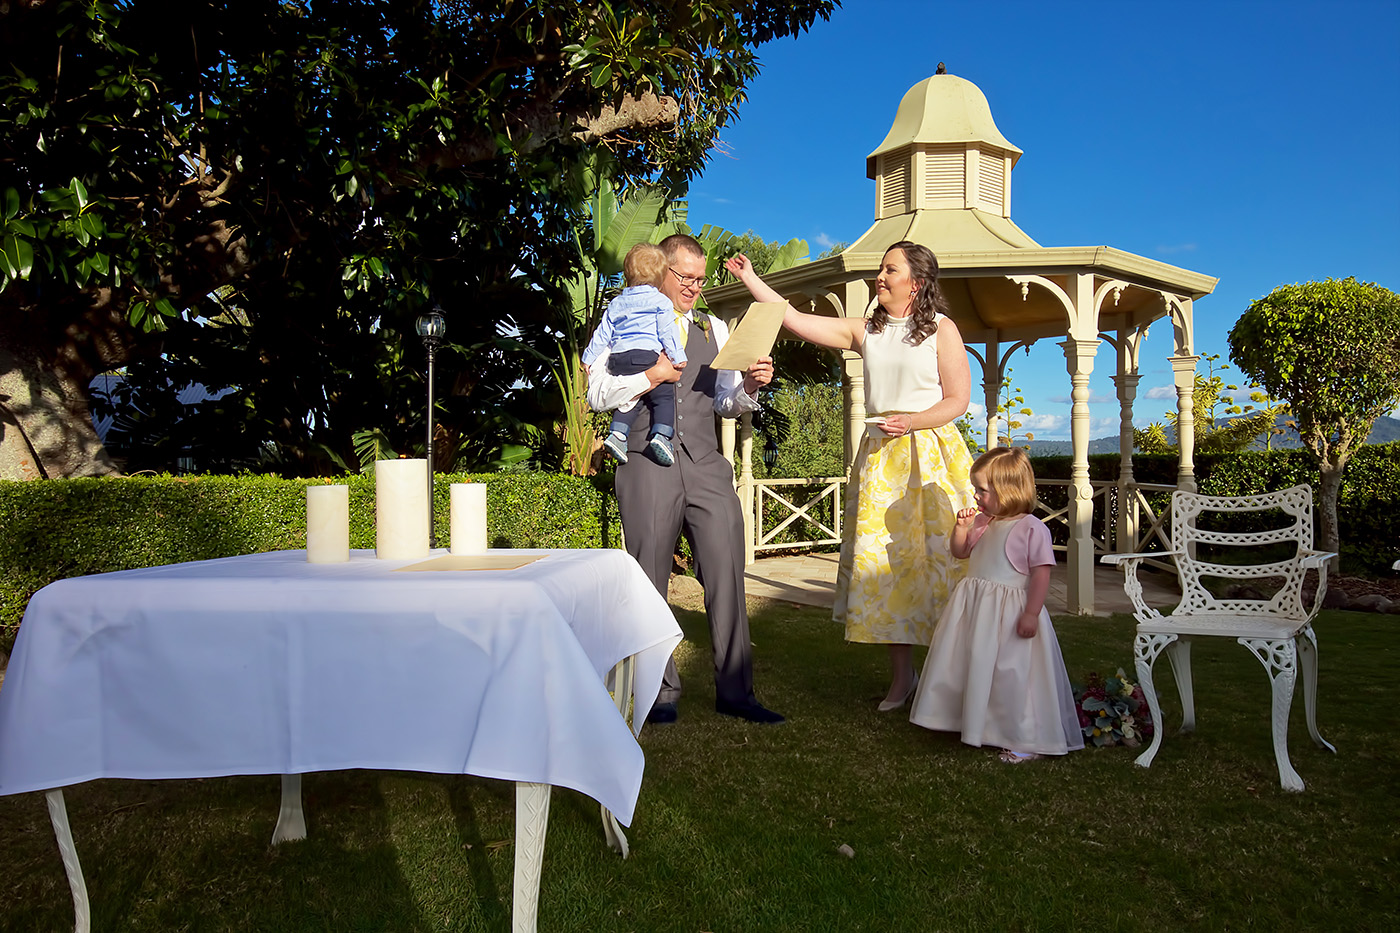 Brisbane Wedding Photographer - Meghann & Nathan - 36